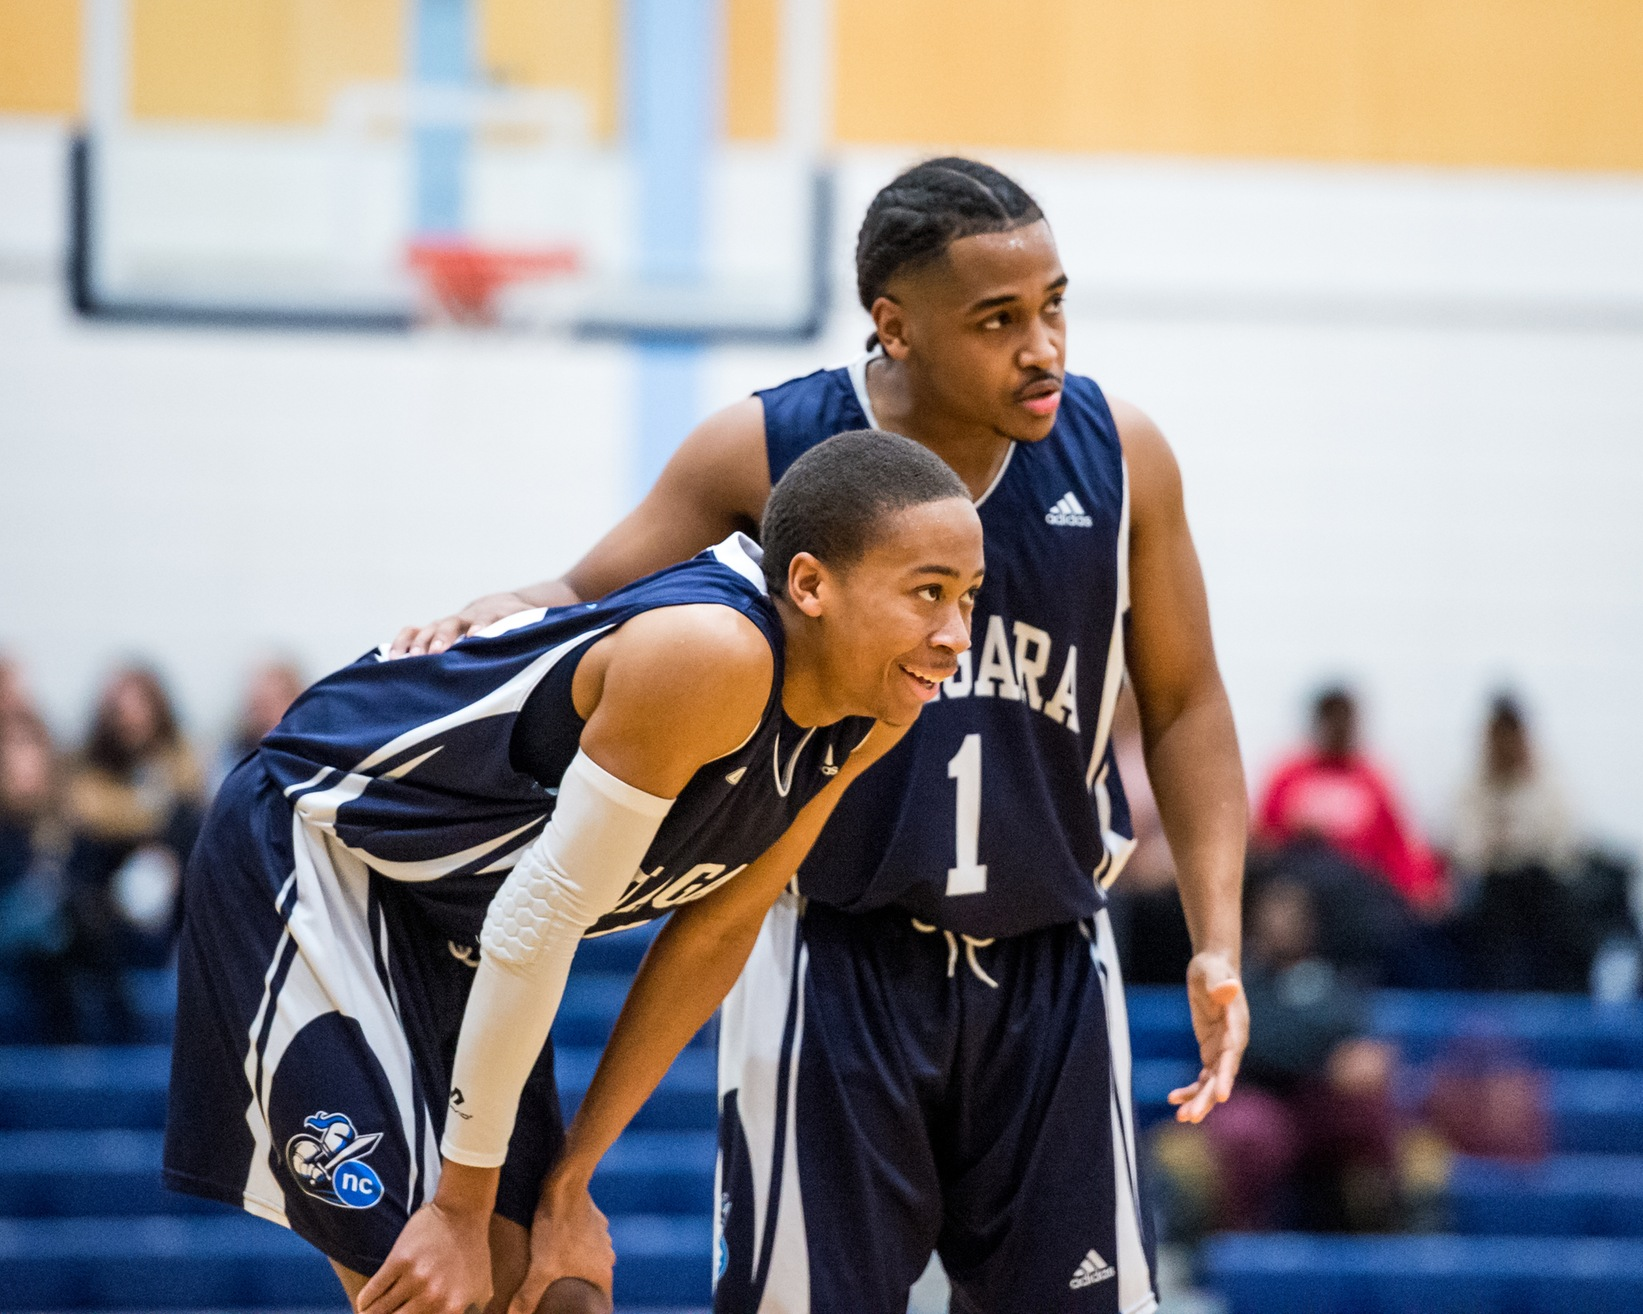 Men's basketball set to host Loyalist in OCAA crossover game